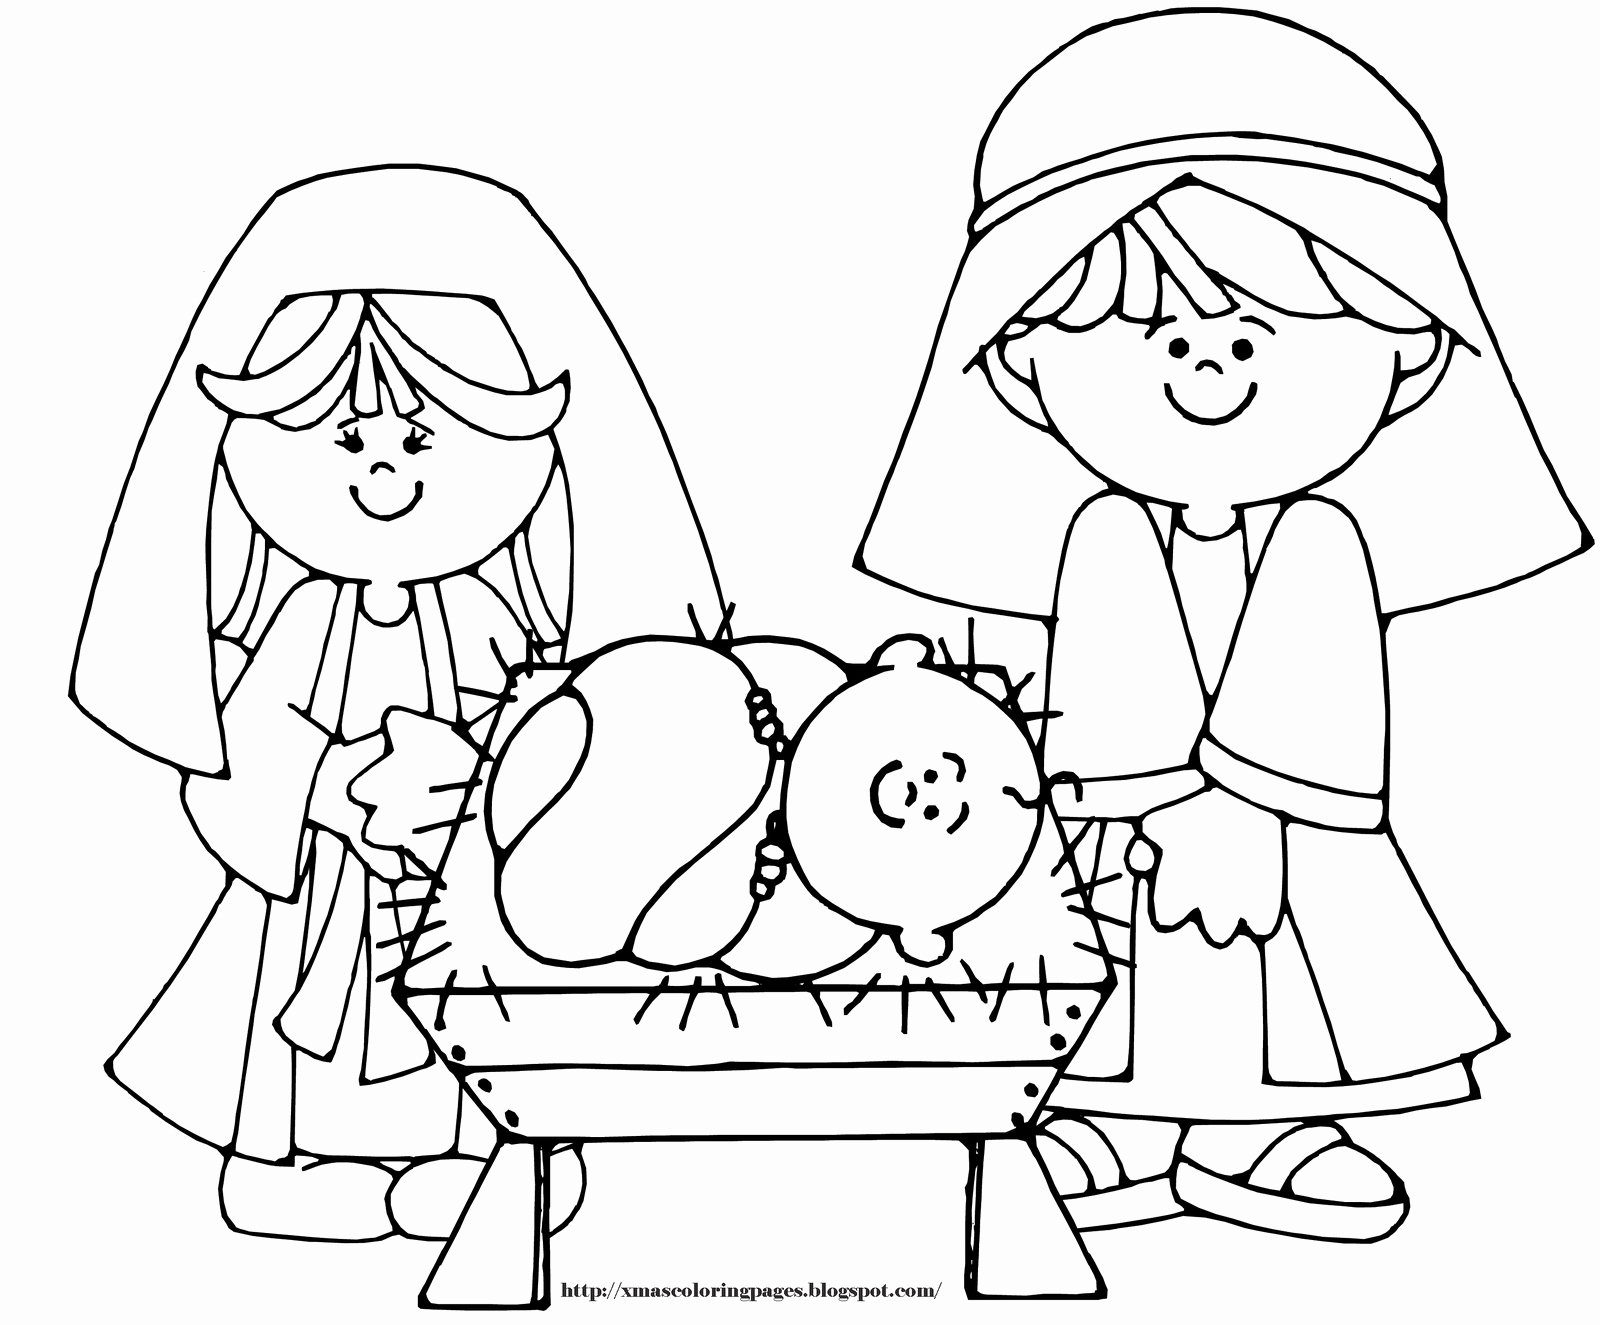 Christmas Coloring Nativity Scene With Printable Pages Preschool